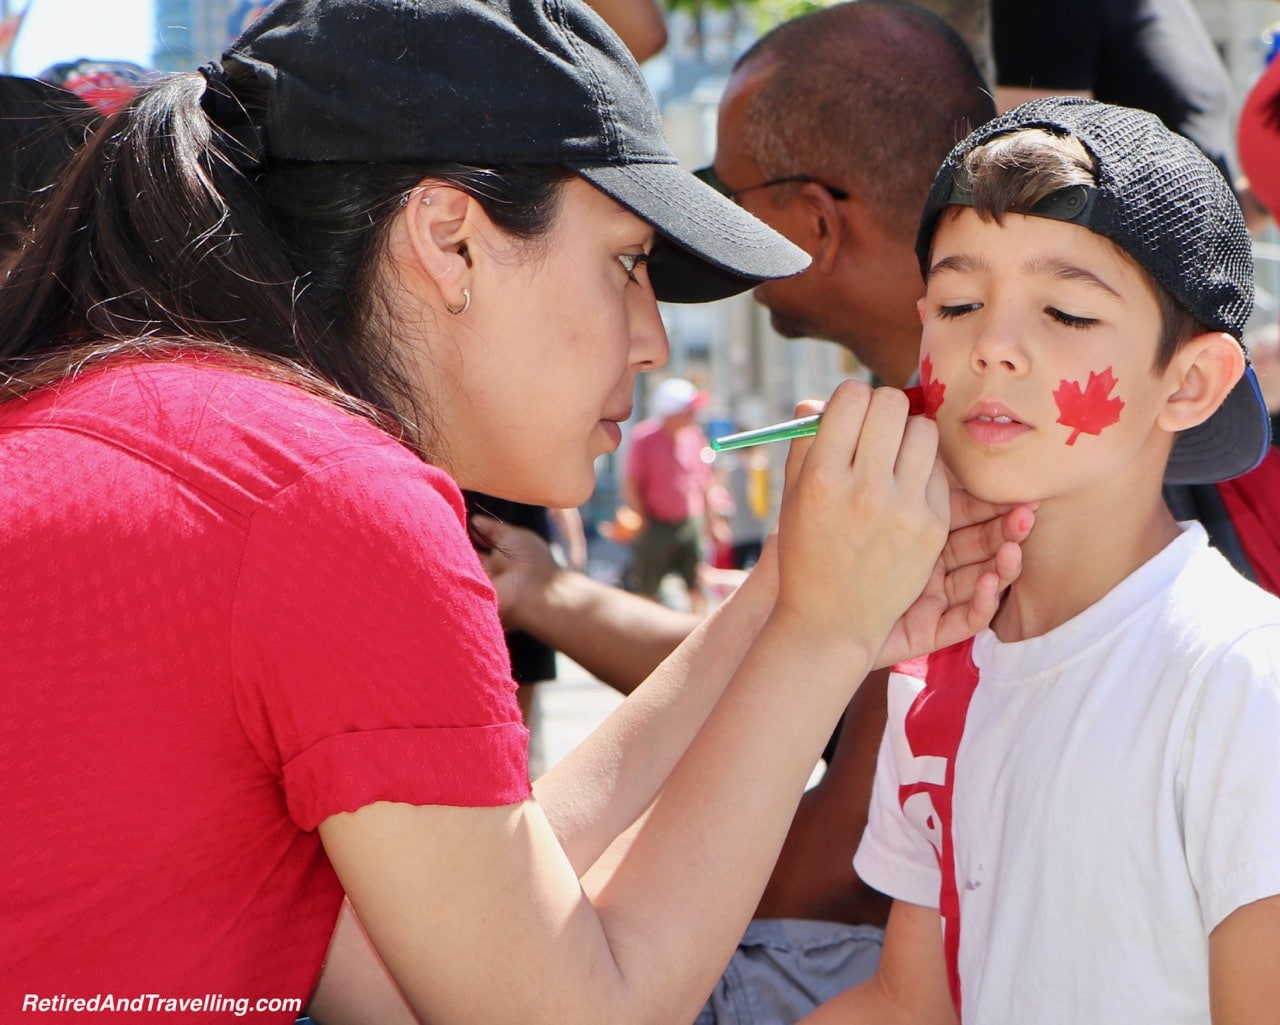 Canada Day face painting.jpg